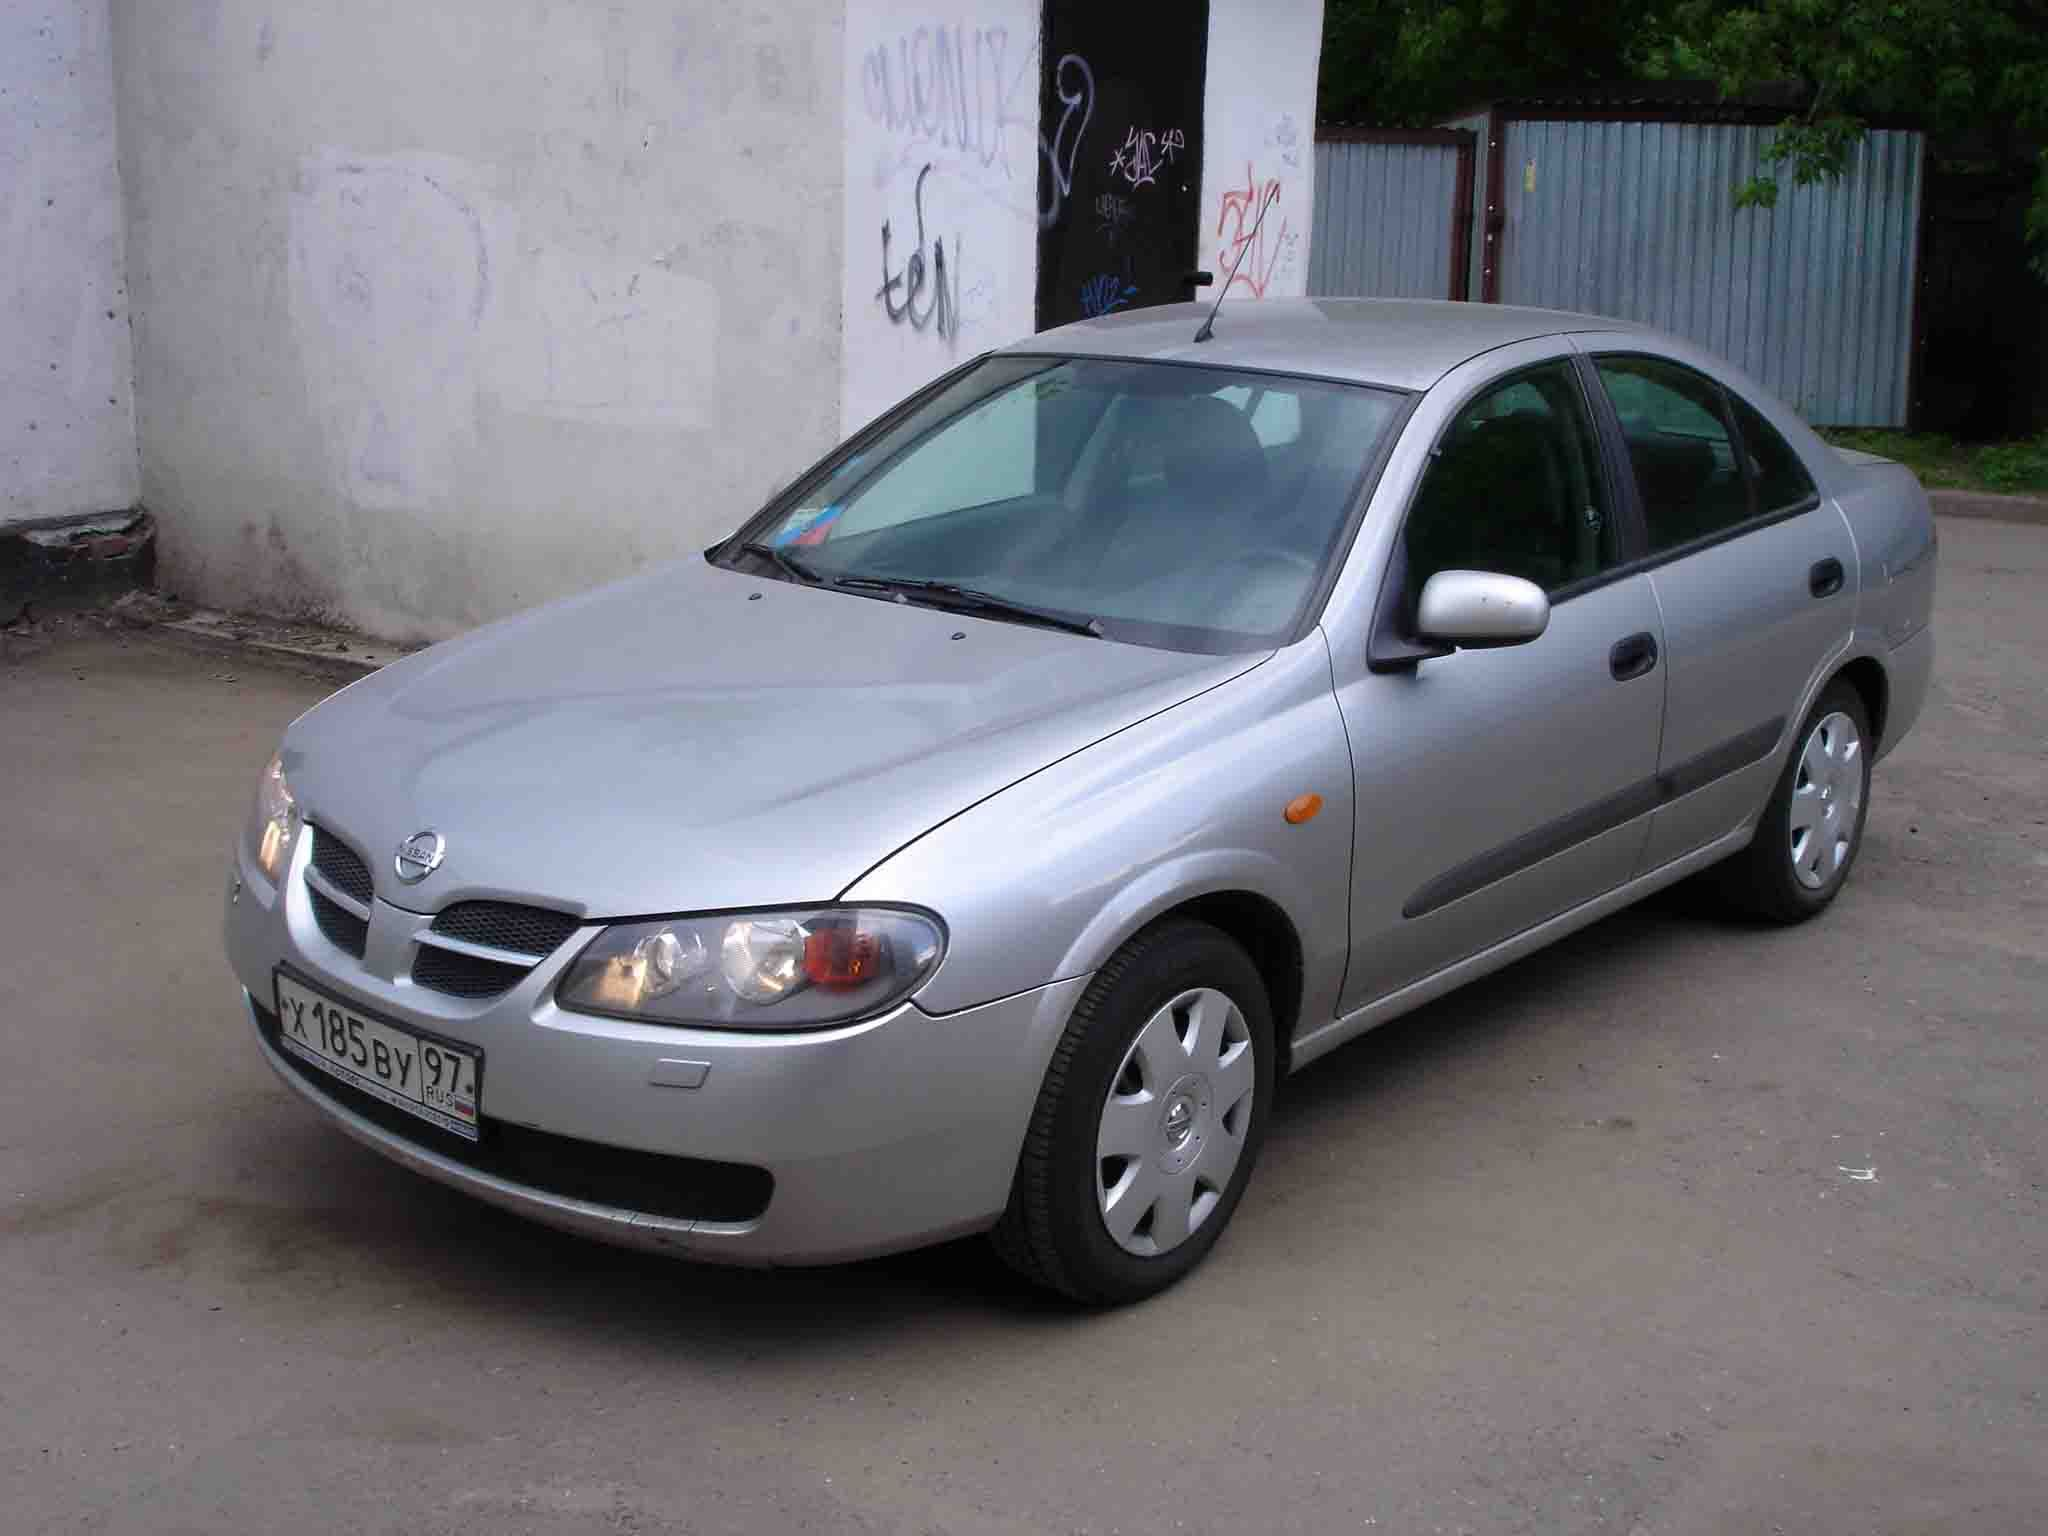 2003 nissan almera pictures 1500cc gasoline ff manual for sale. Black Bedroom Furniture Sets. Home Design Ideas